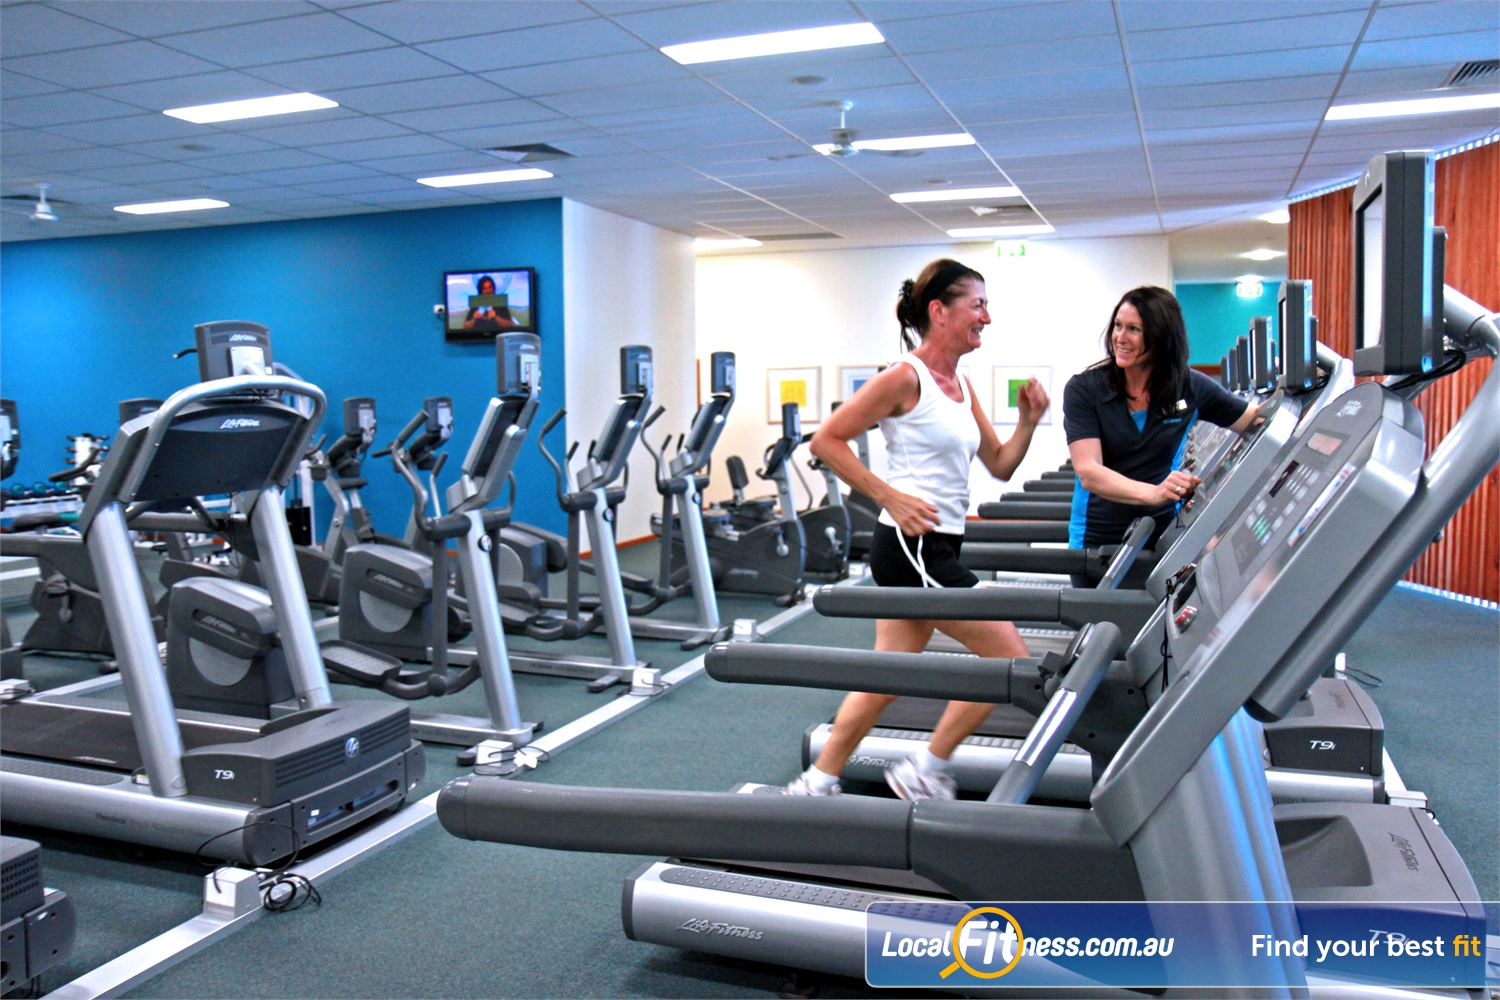 Fernwood Fitness Waurn Ponds Fernwood Waurn Ponds gym instructors can help you with cardio and weight management.